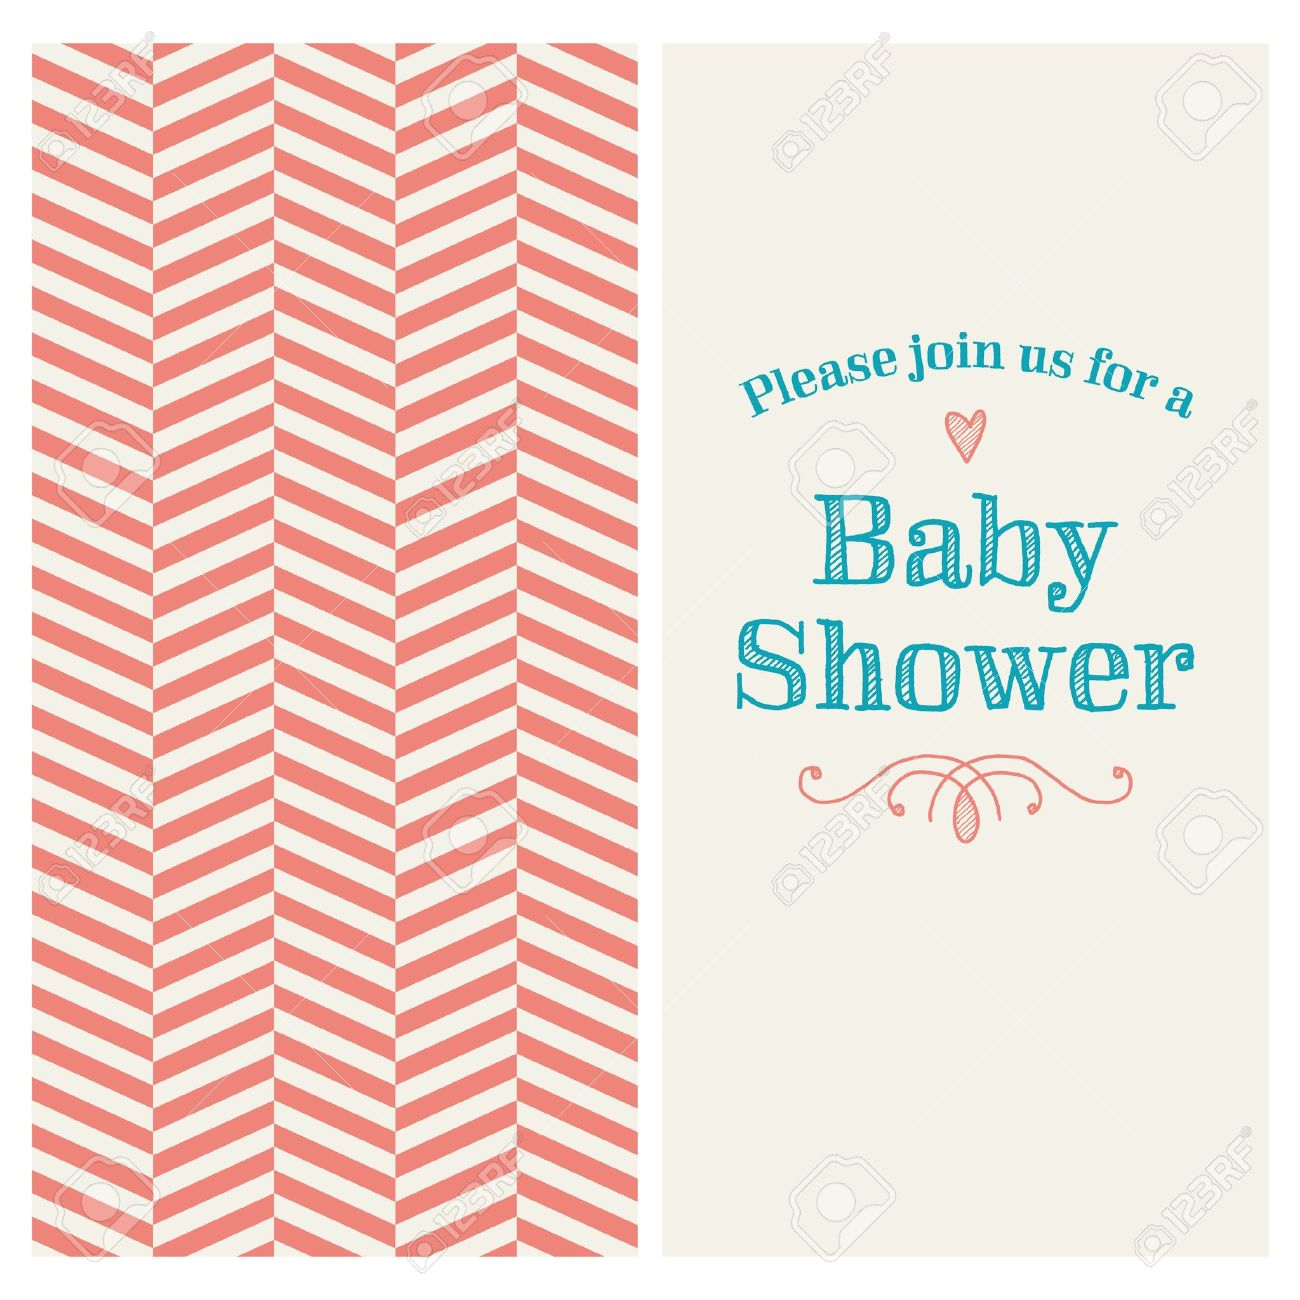 Baby shower invitation card editable with vintage retro background baby shower invitation card editable with vintage retro background chevron type font ornaments filmwisefo